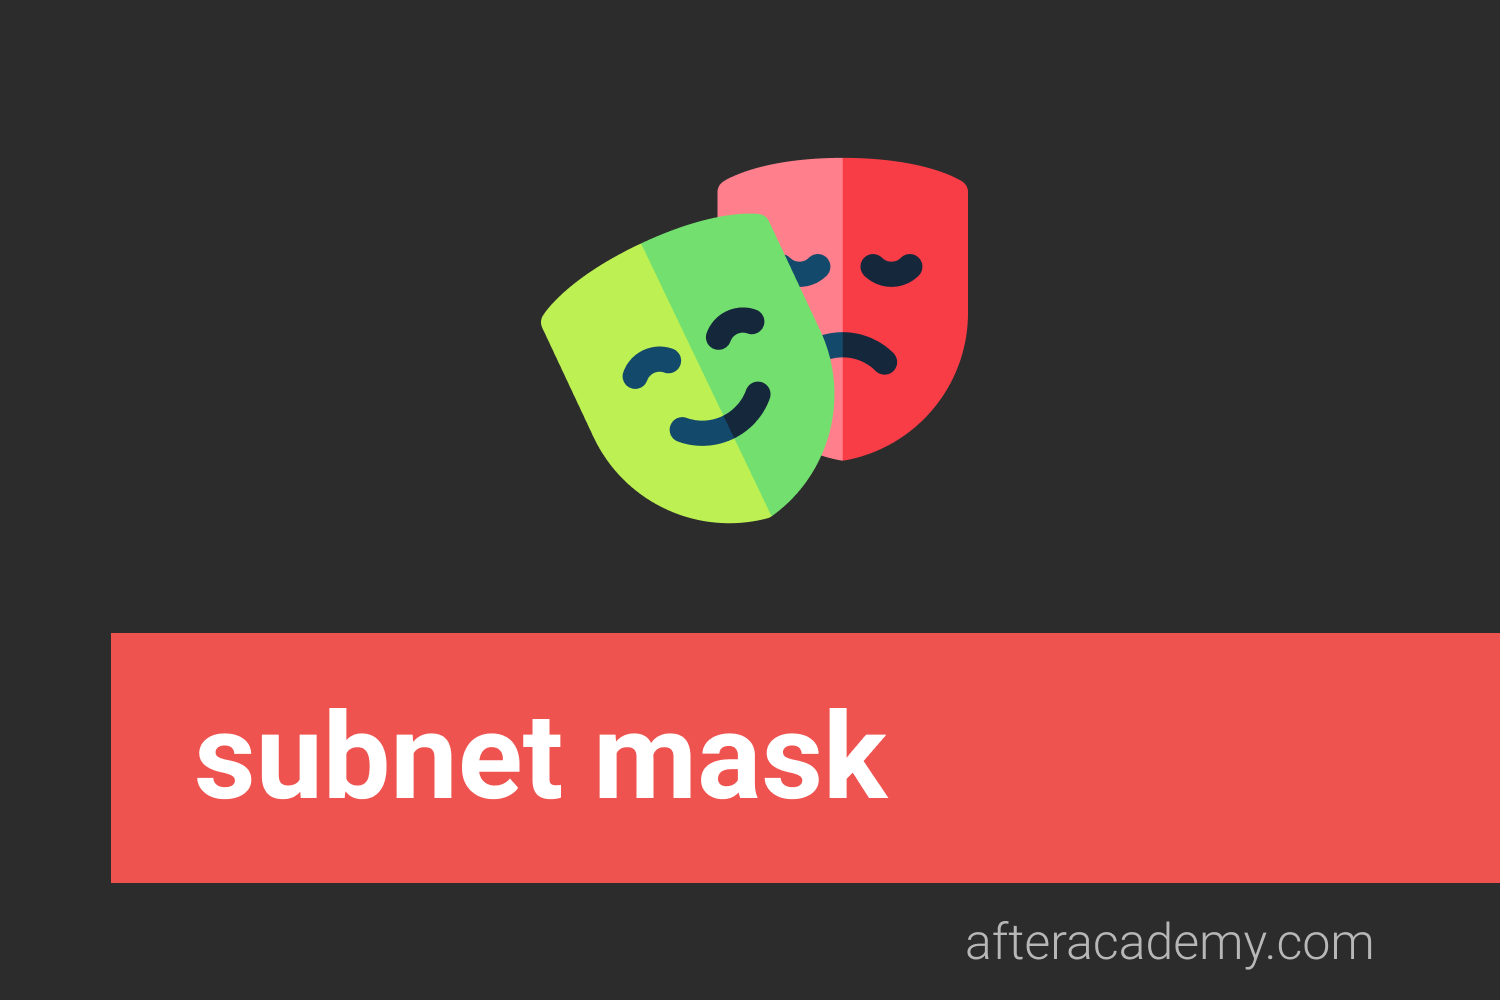 What is a Subnet mask?